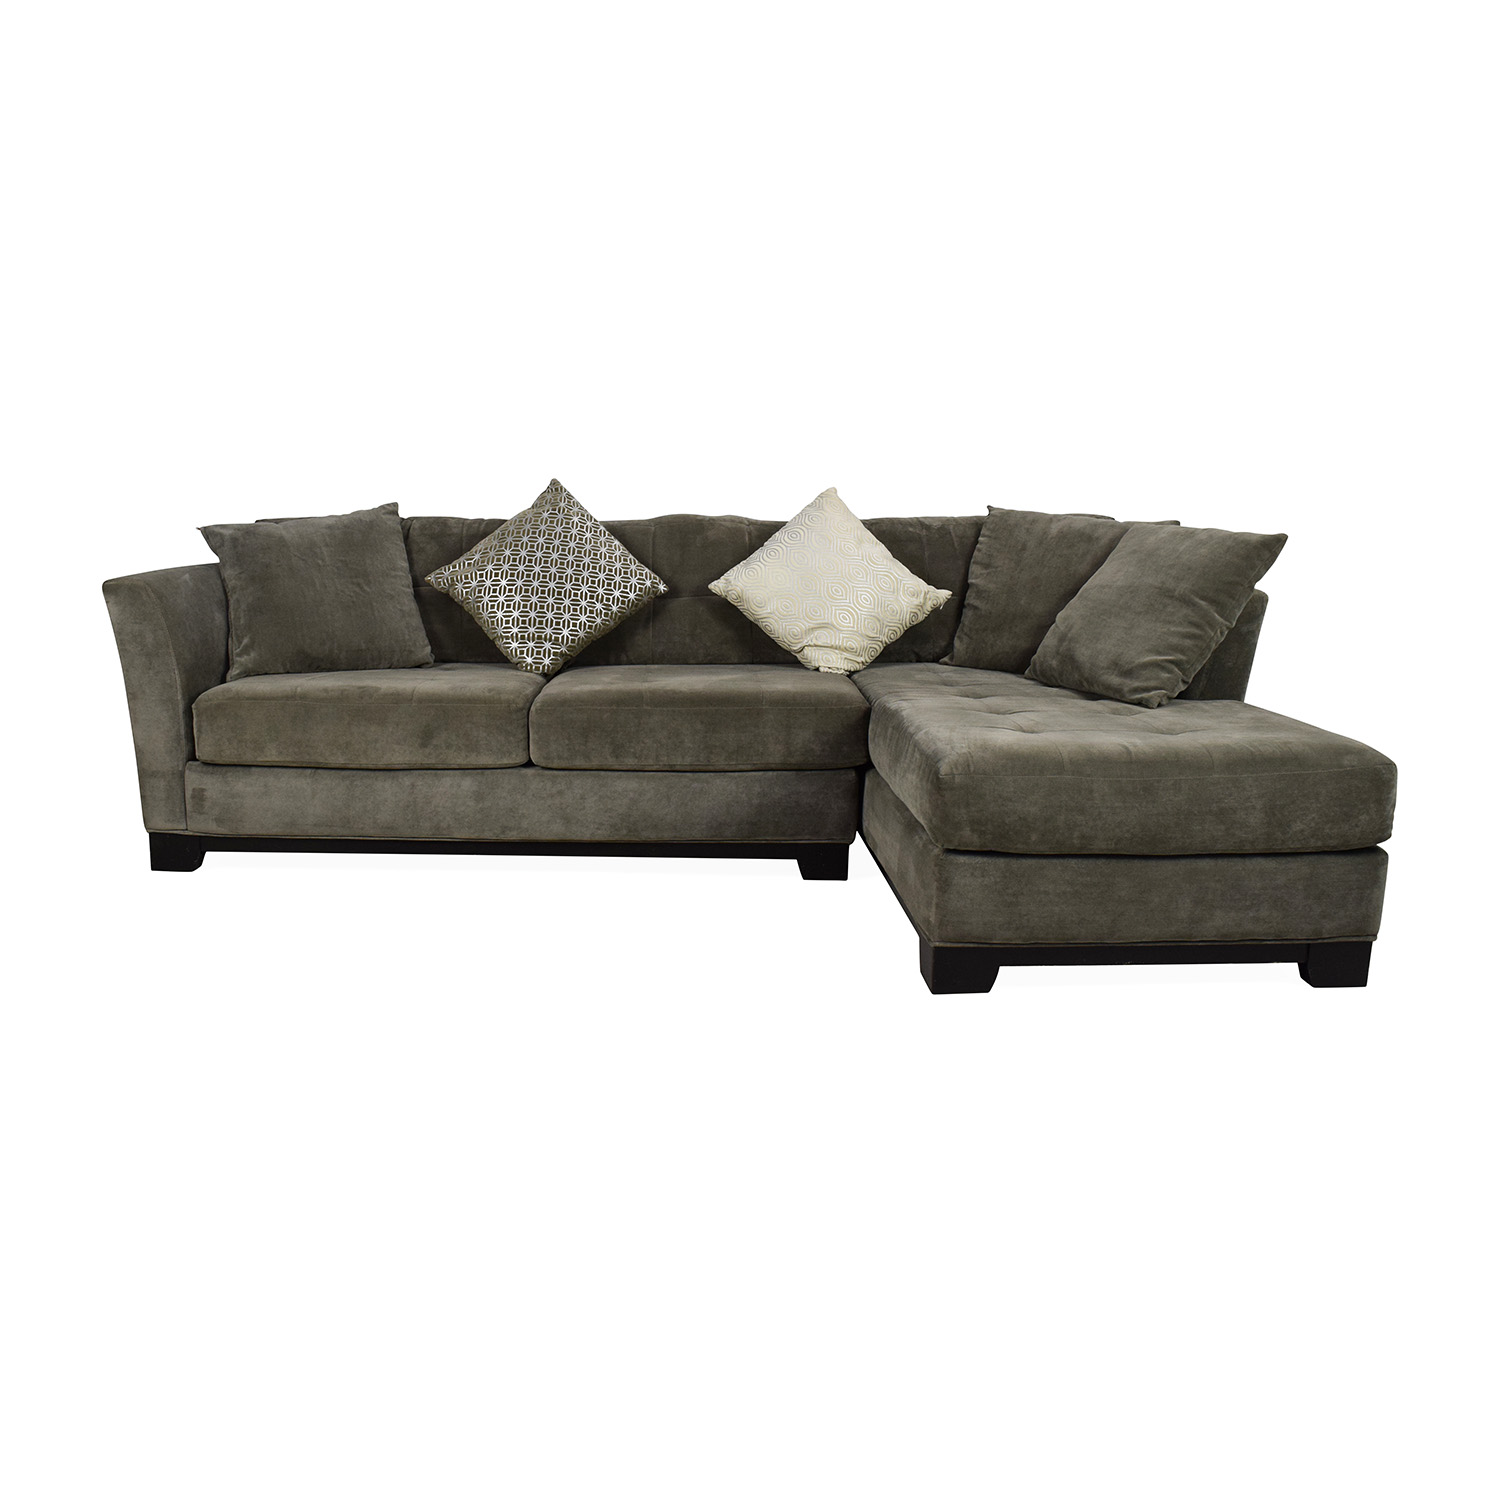 Macys Macys Gray Sectional Couch with Chaise discount